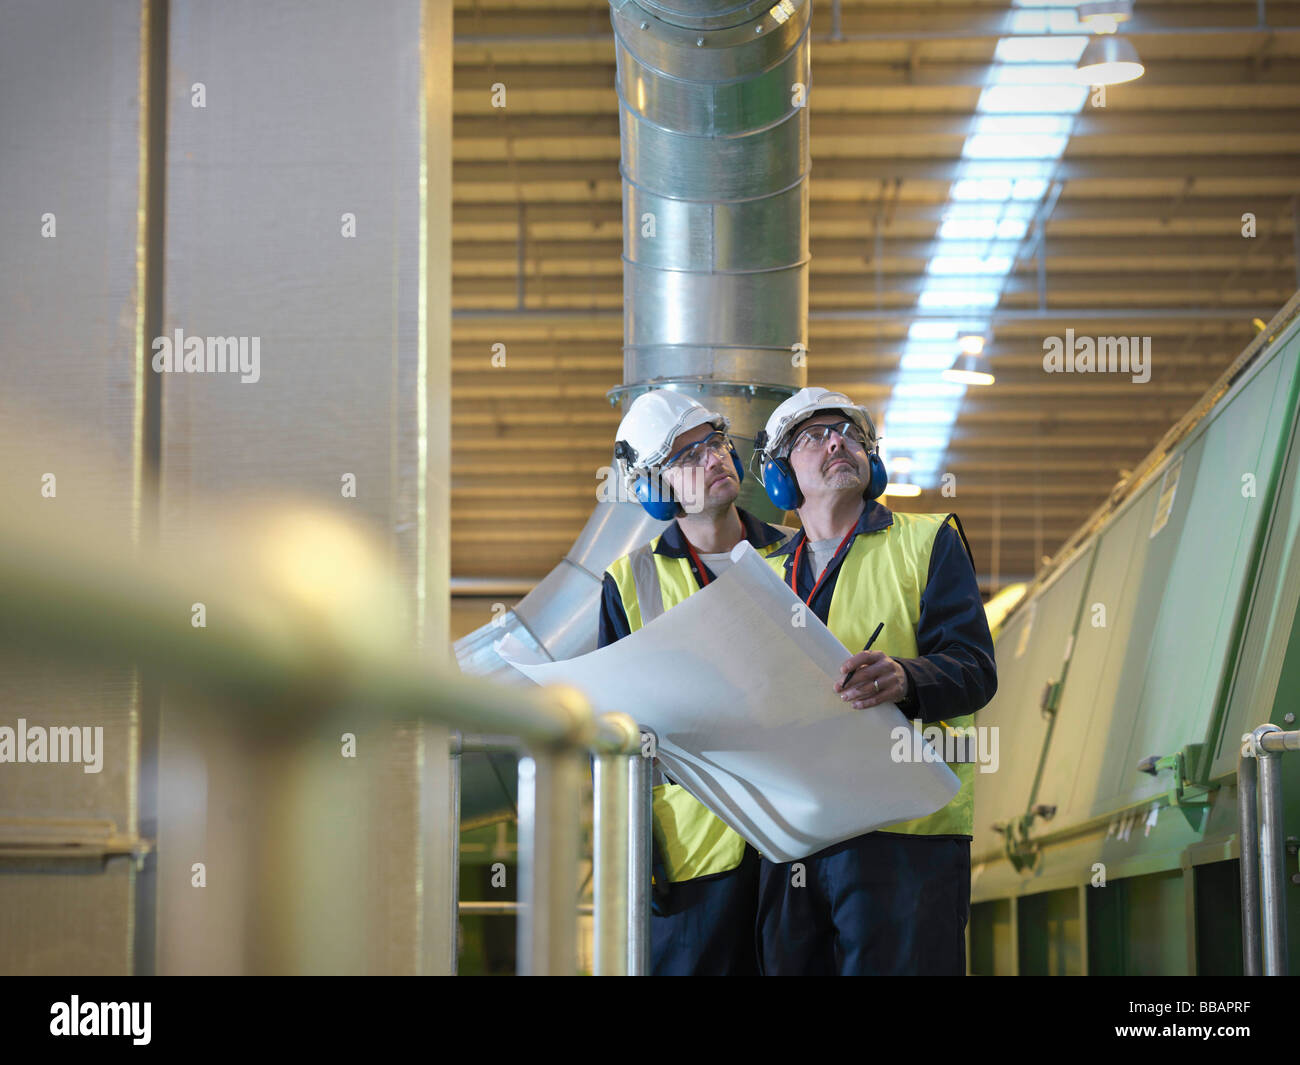 Workers With Plans In Plant - Stock Image